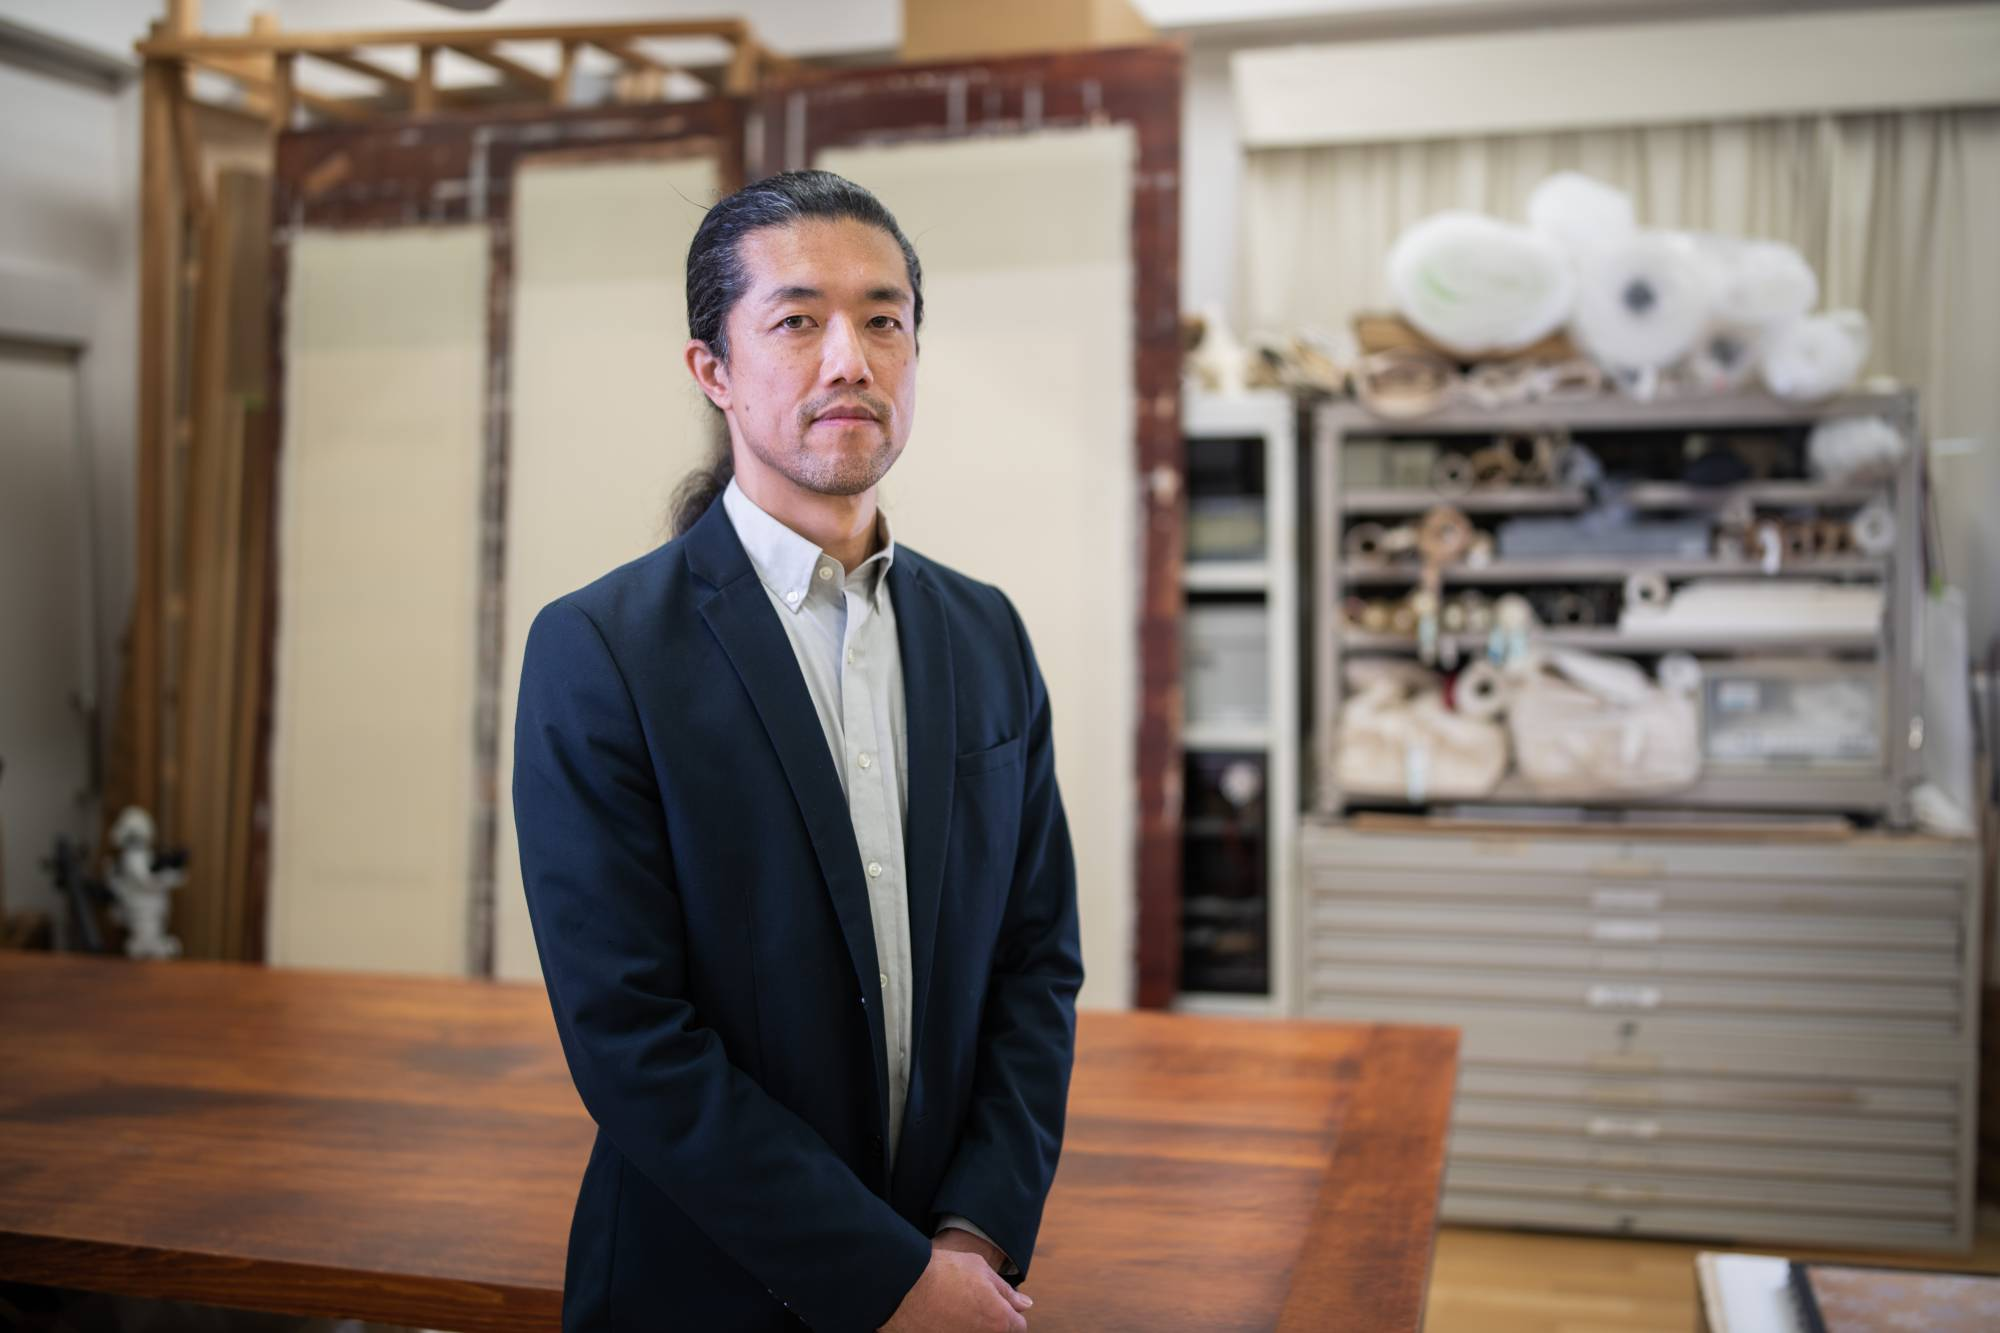 Touch of culture: Keisuke Sugiyama worries that as Japanese homes become more Westernized, traditional elements like hanging scrolls could disappear.  |